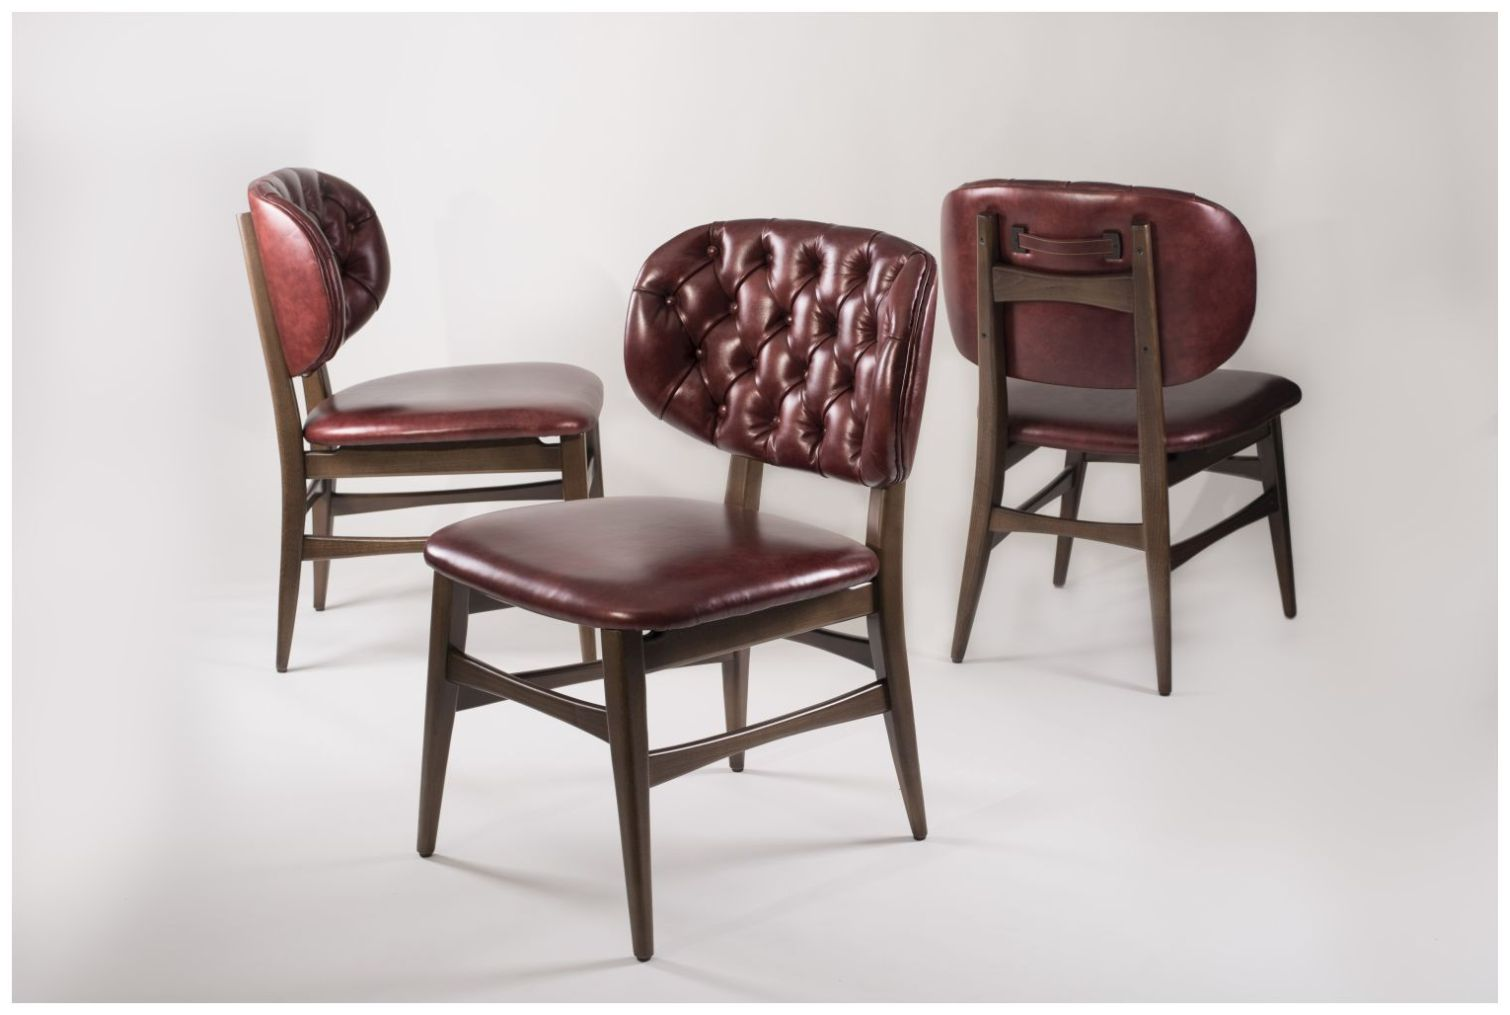 Custom Tufted Back Hospitality Dining Chairs